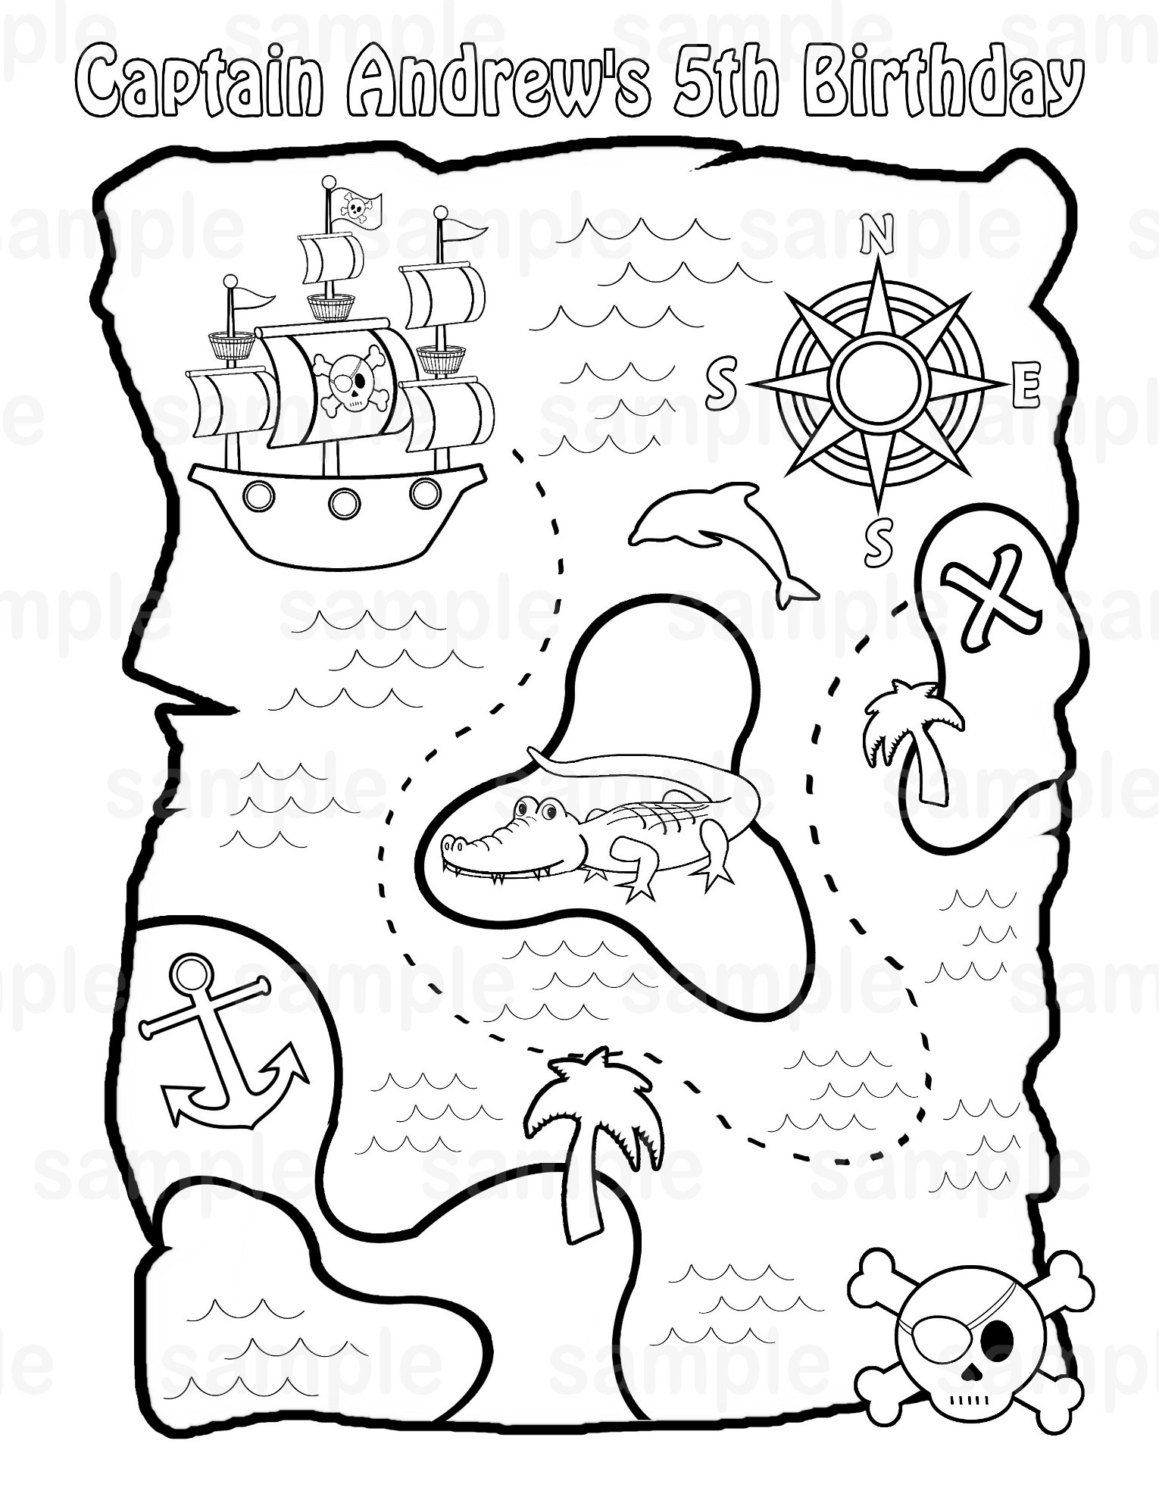 Personalized Printable Pirate Treasure Map Birthday Party Favor